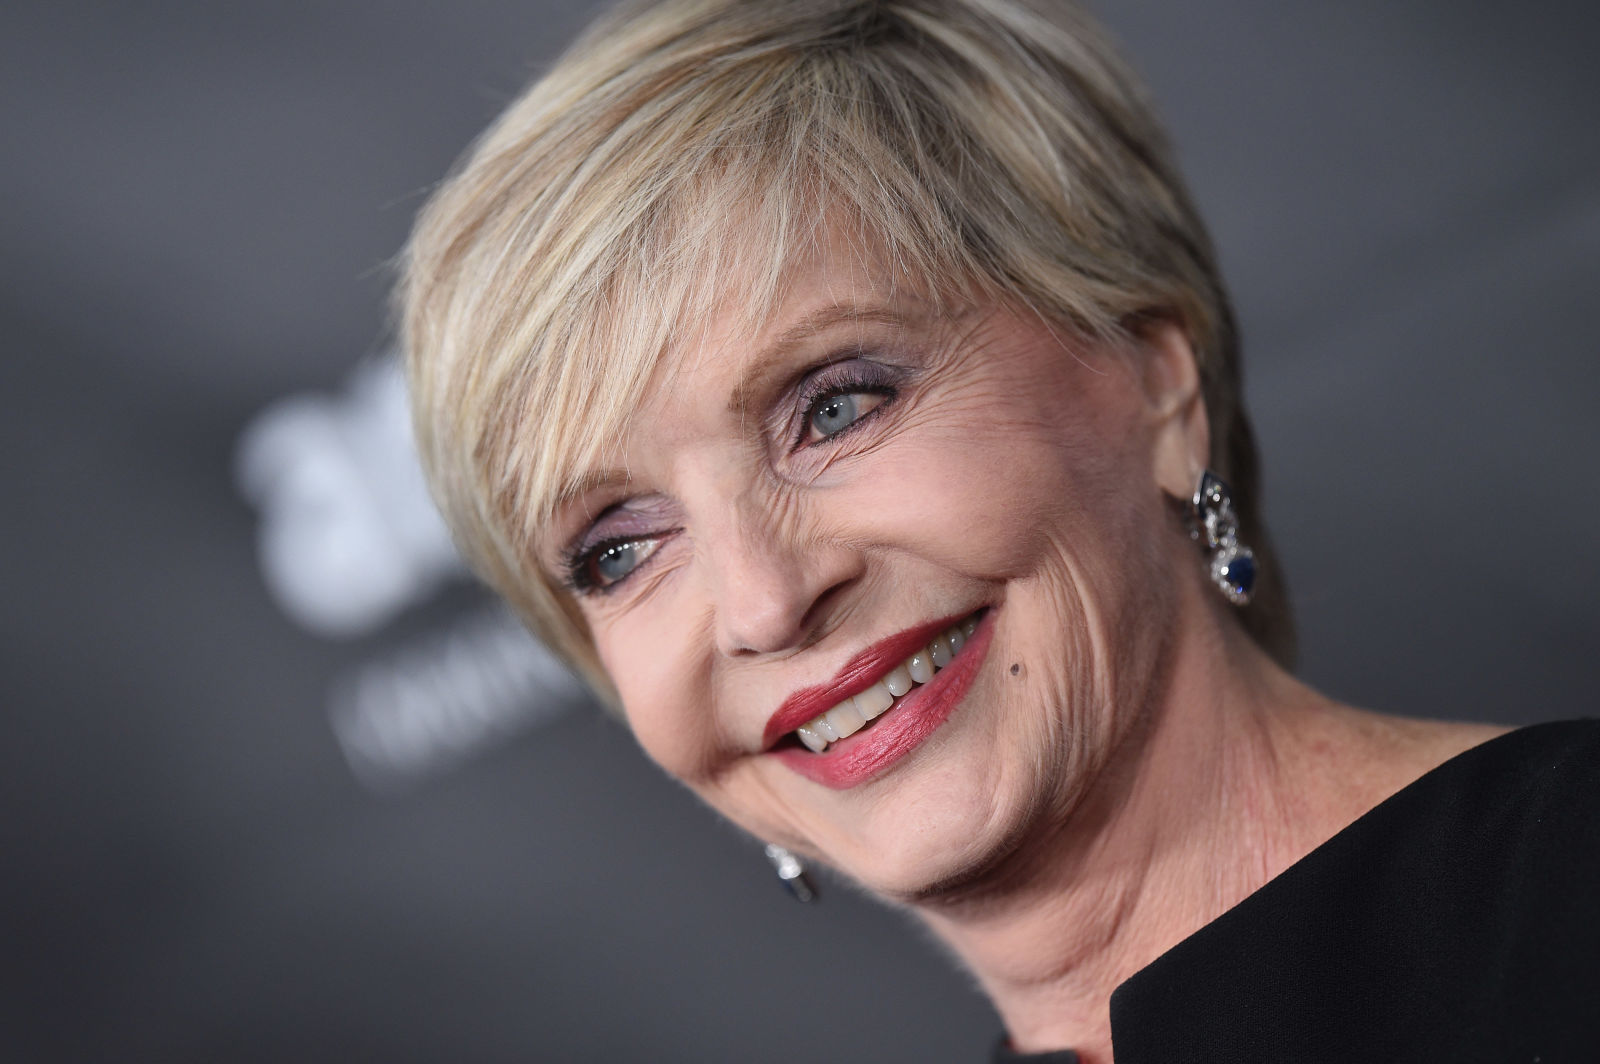 Florence henderson abuso sexual